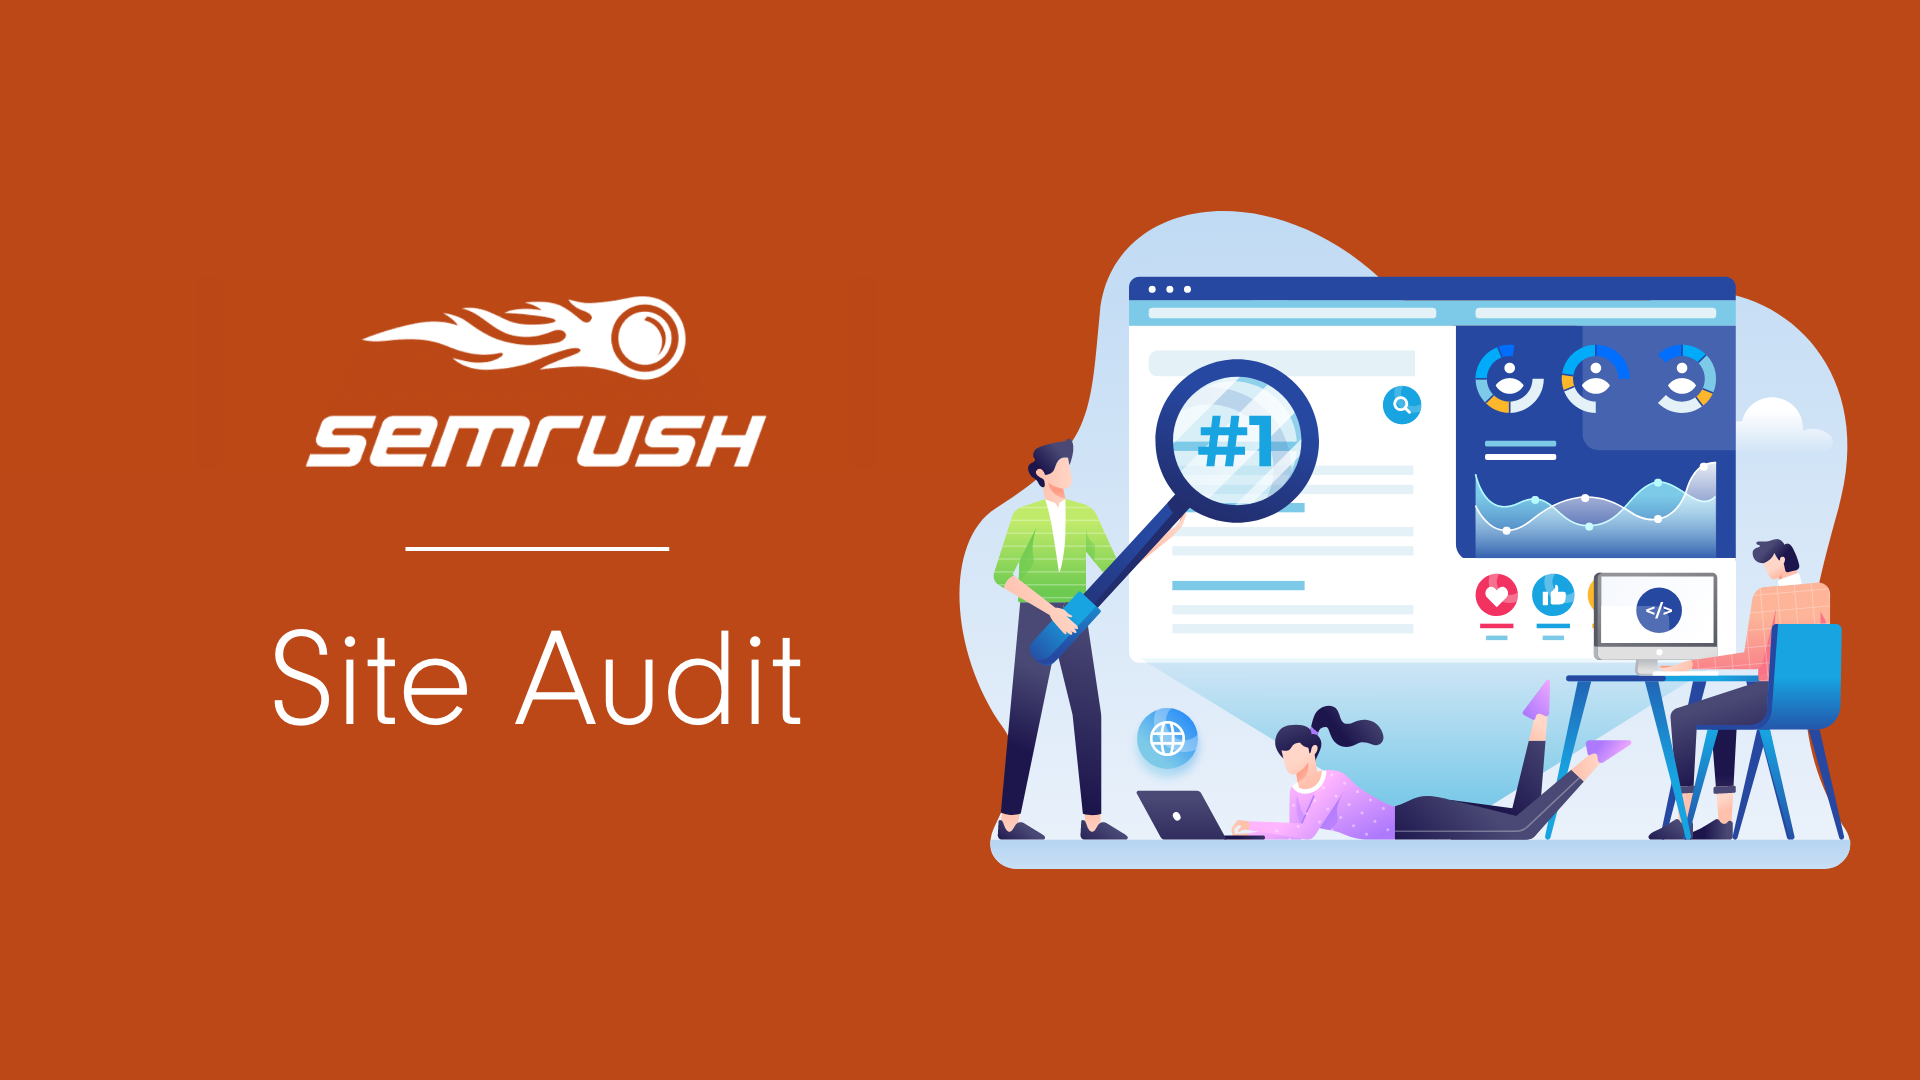 Running an SEMRush Site Audit